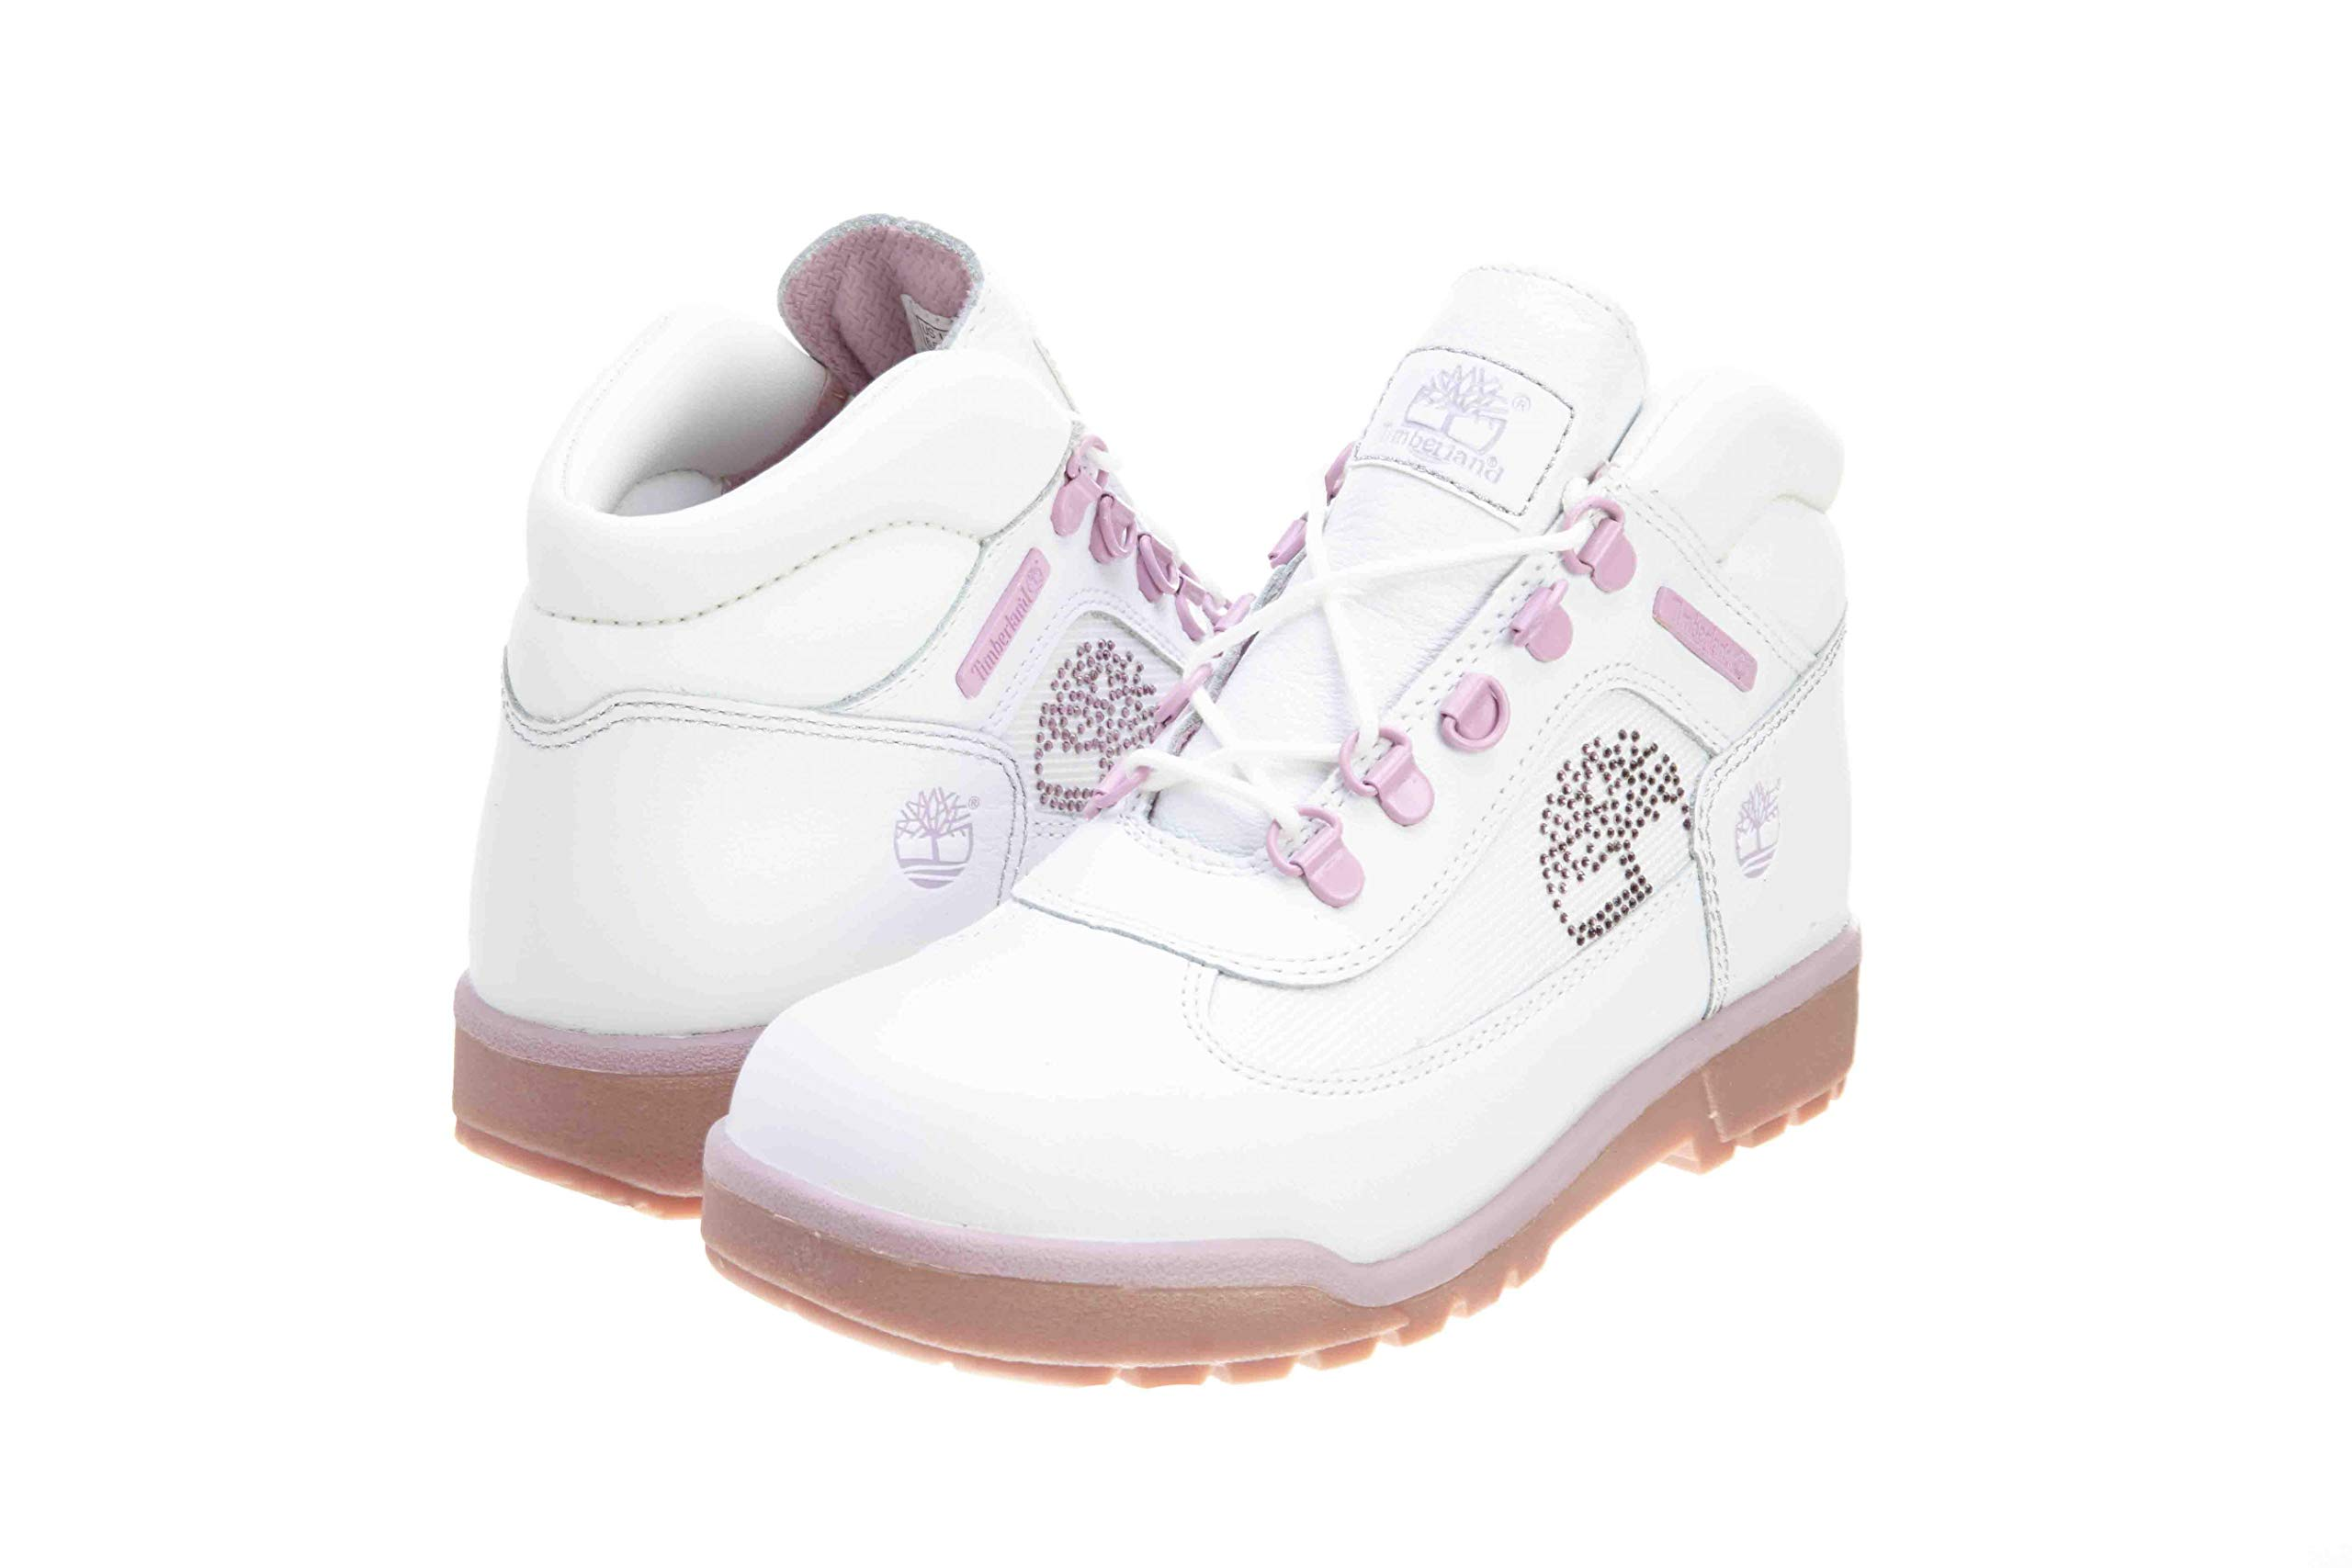 Timberland Field Boots (Gs) Big Kids Style: 25985-LUXWHITE Size: 4.5 by Timberland (Image #1)